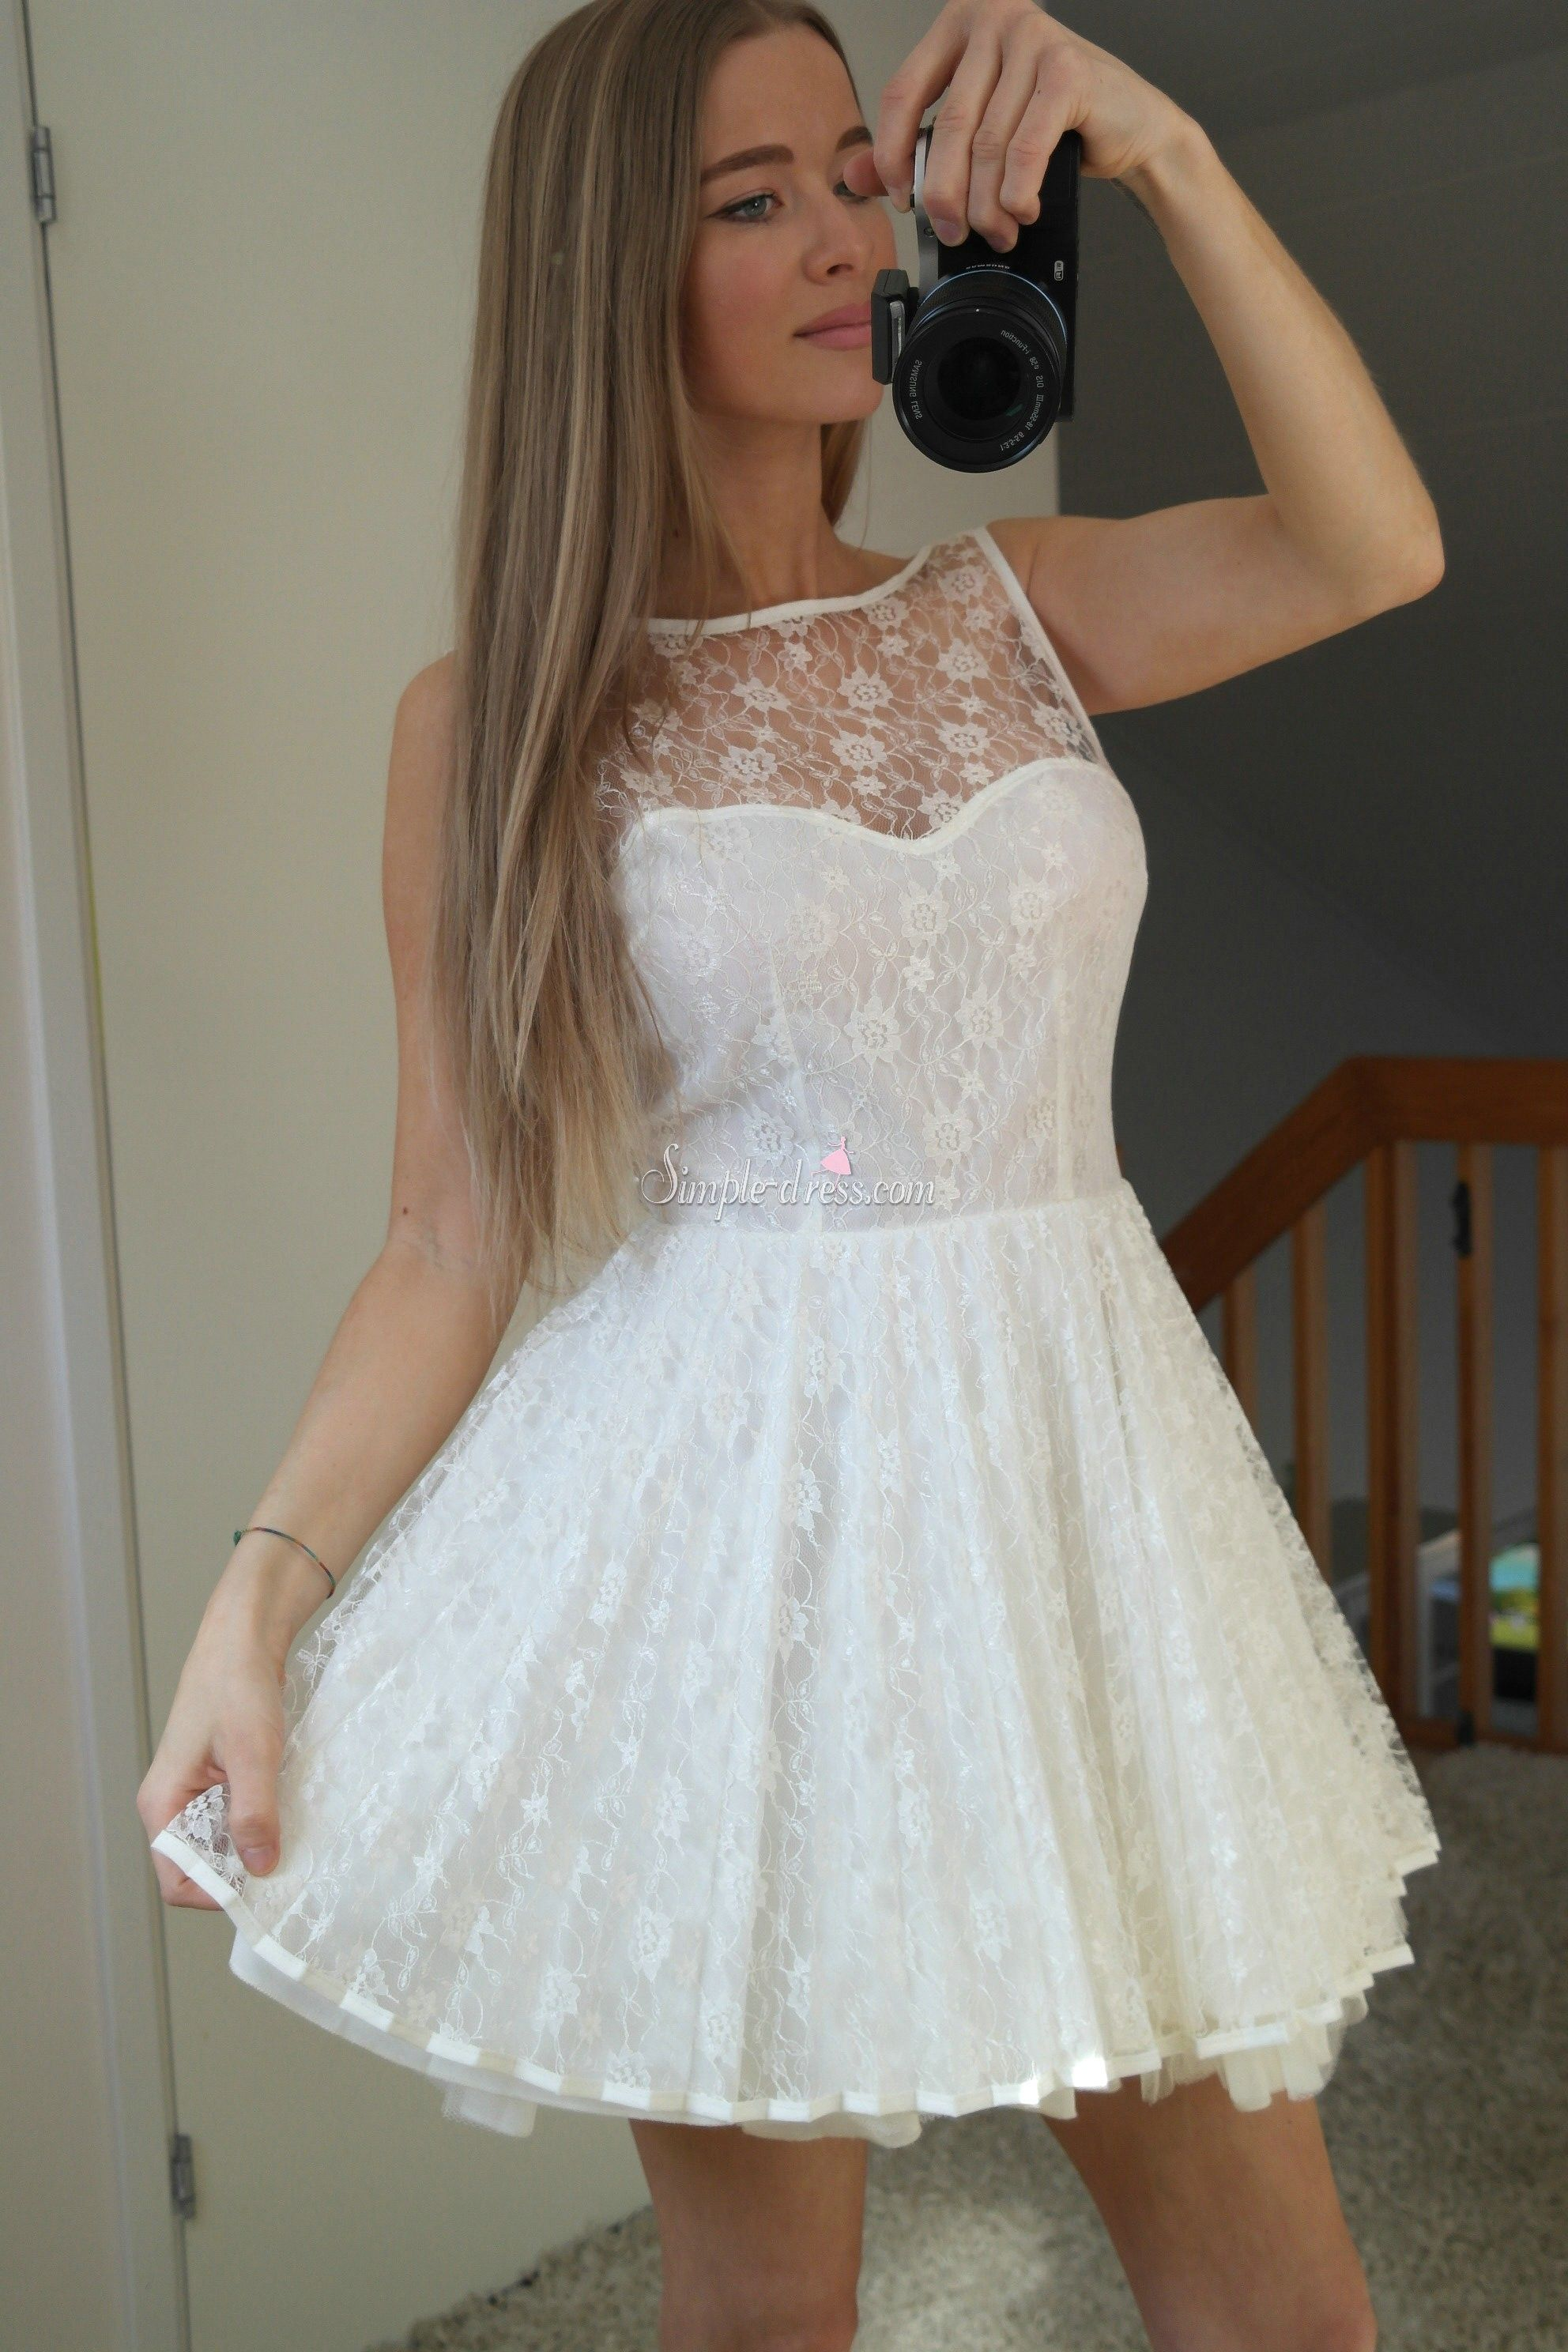 Pretty Dress That Are Short